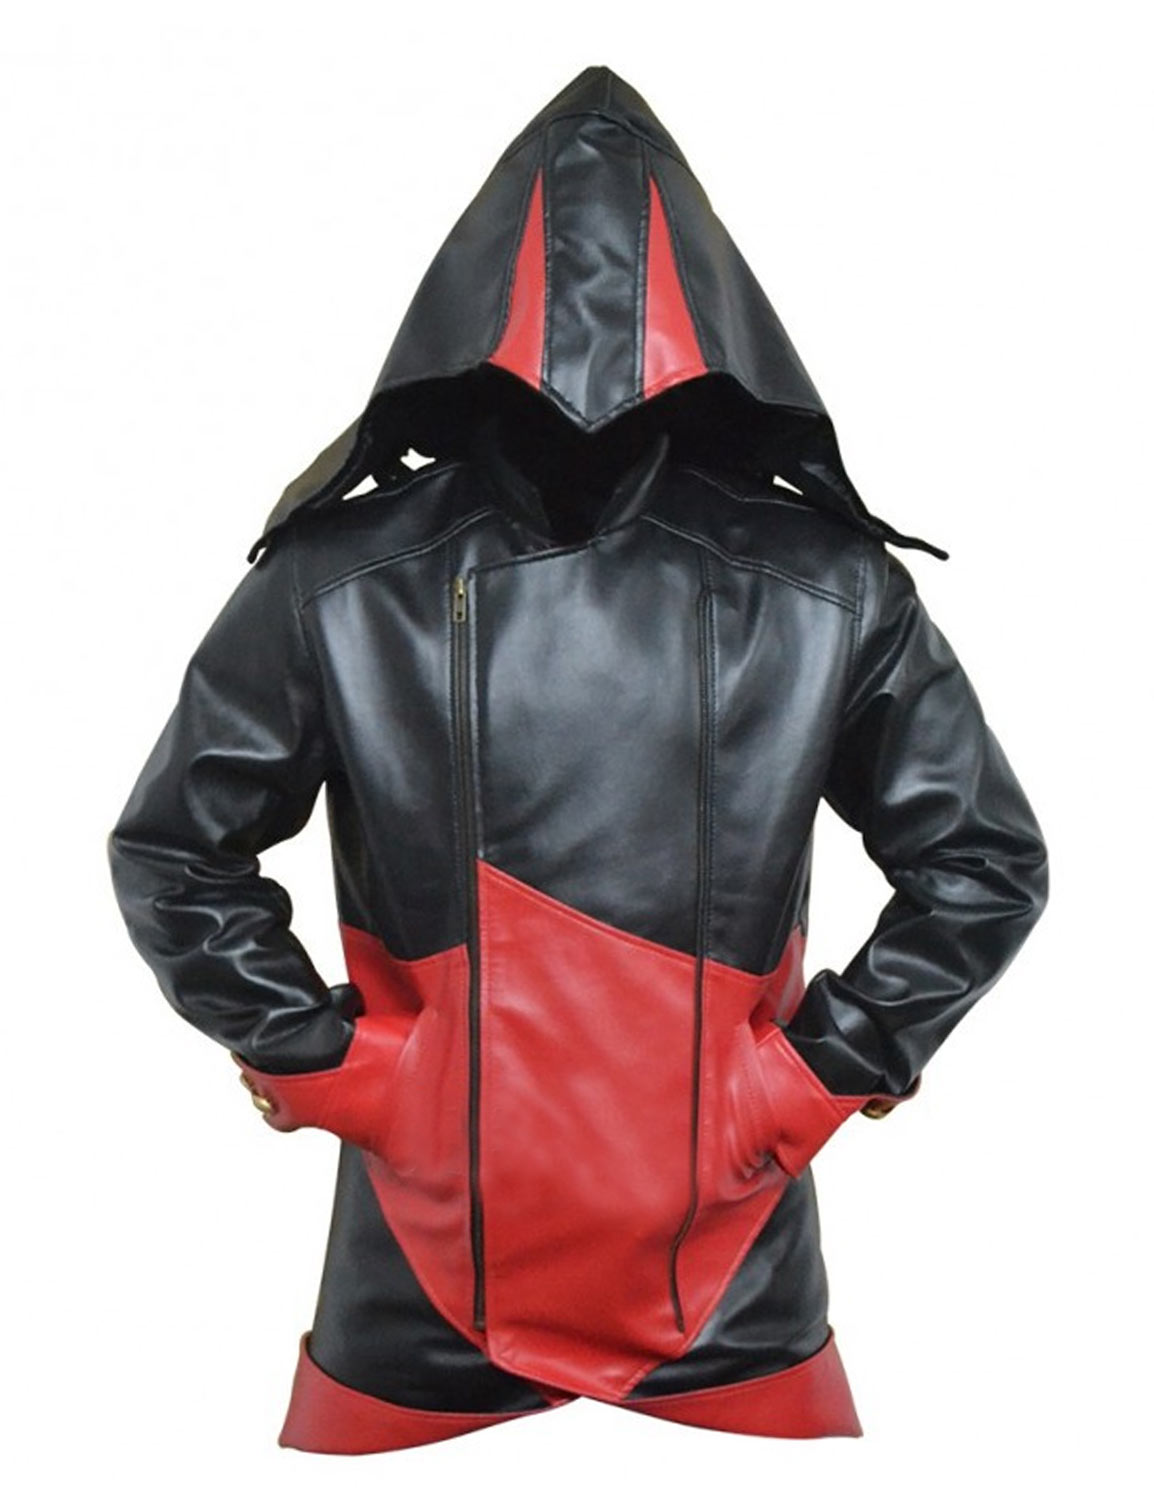 Assassins Creed 3 Jacket Connor Kenway Hoodie Hjackets